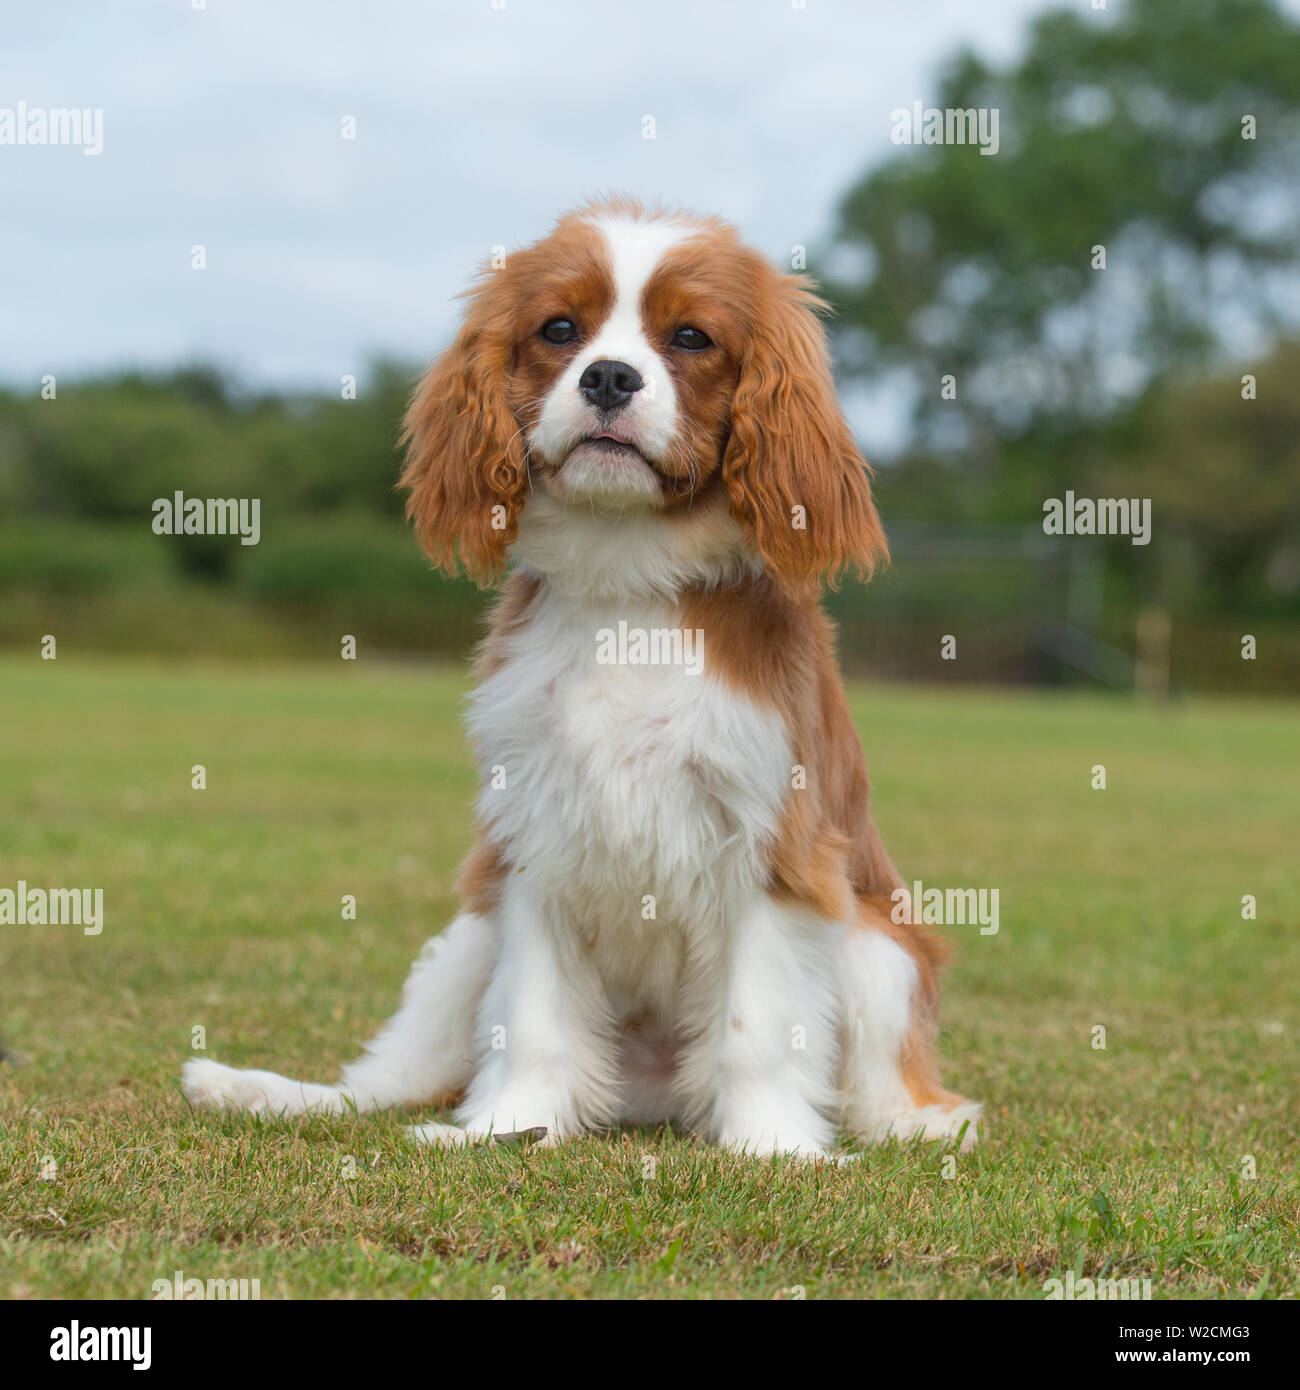 Cavalier King Charles Spaniel Puppy Stock Photo Alamy